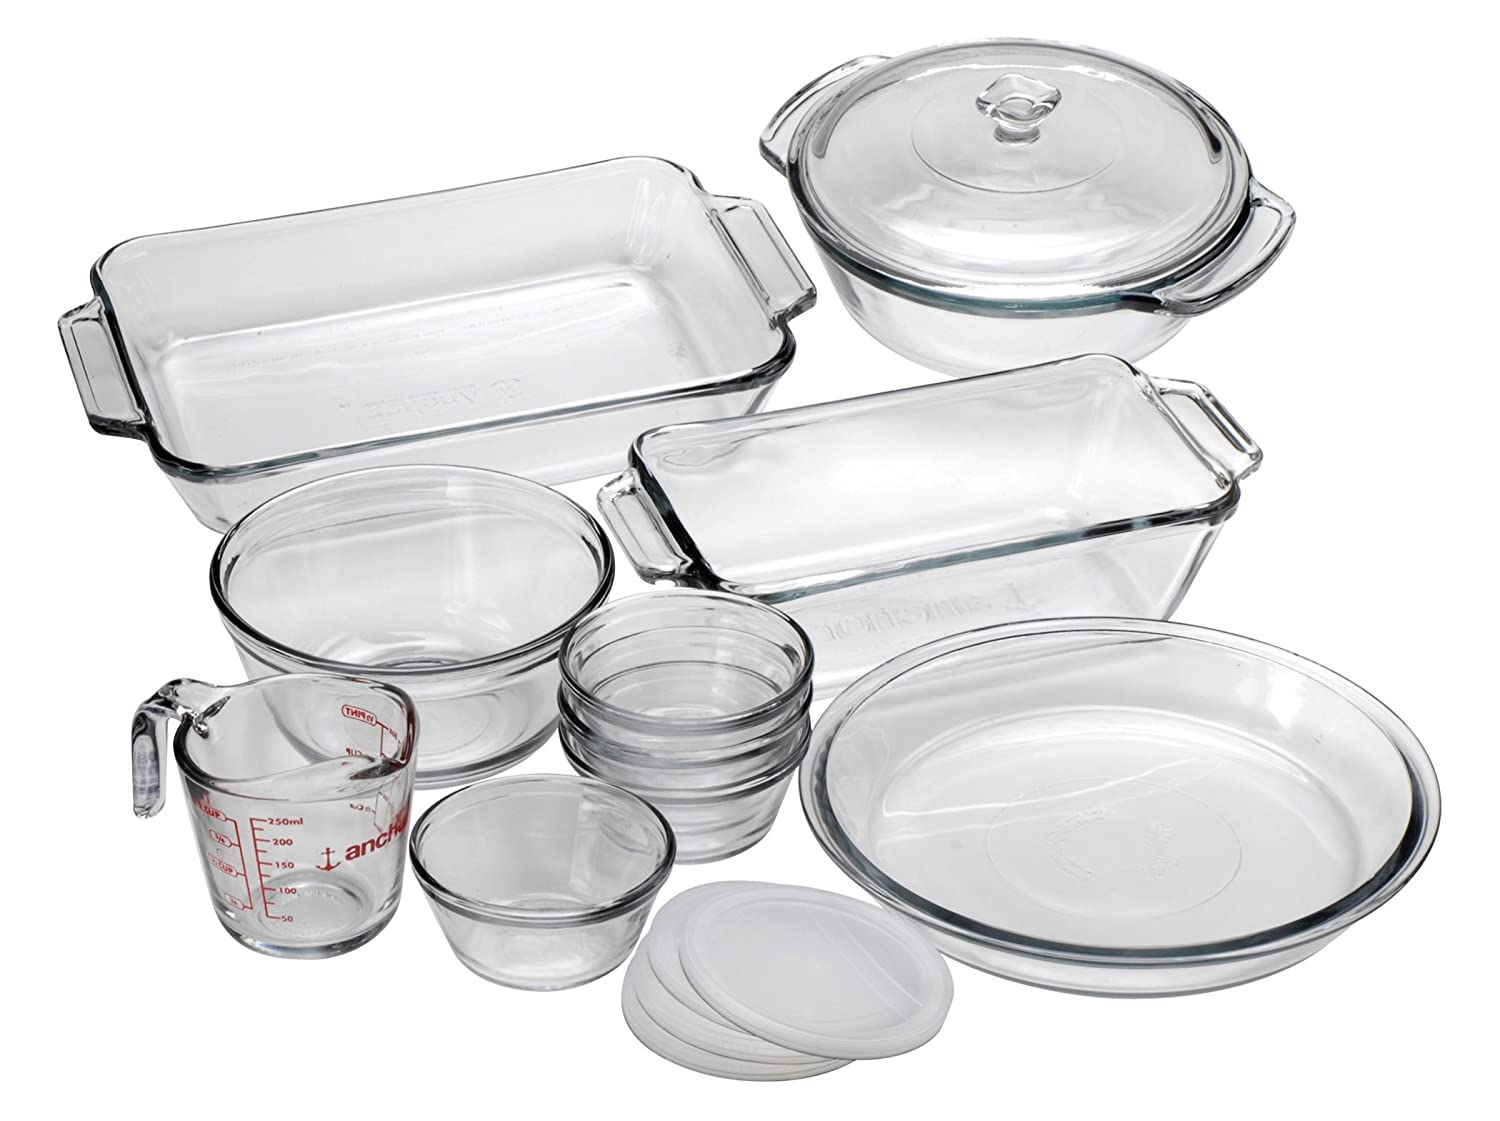 Anchor Hocking Oven Basics 3-Piece Glass Bakeware Set with Square Cake, Rectangular, and Loaf Baking Dishes 68315OBL13